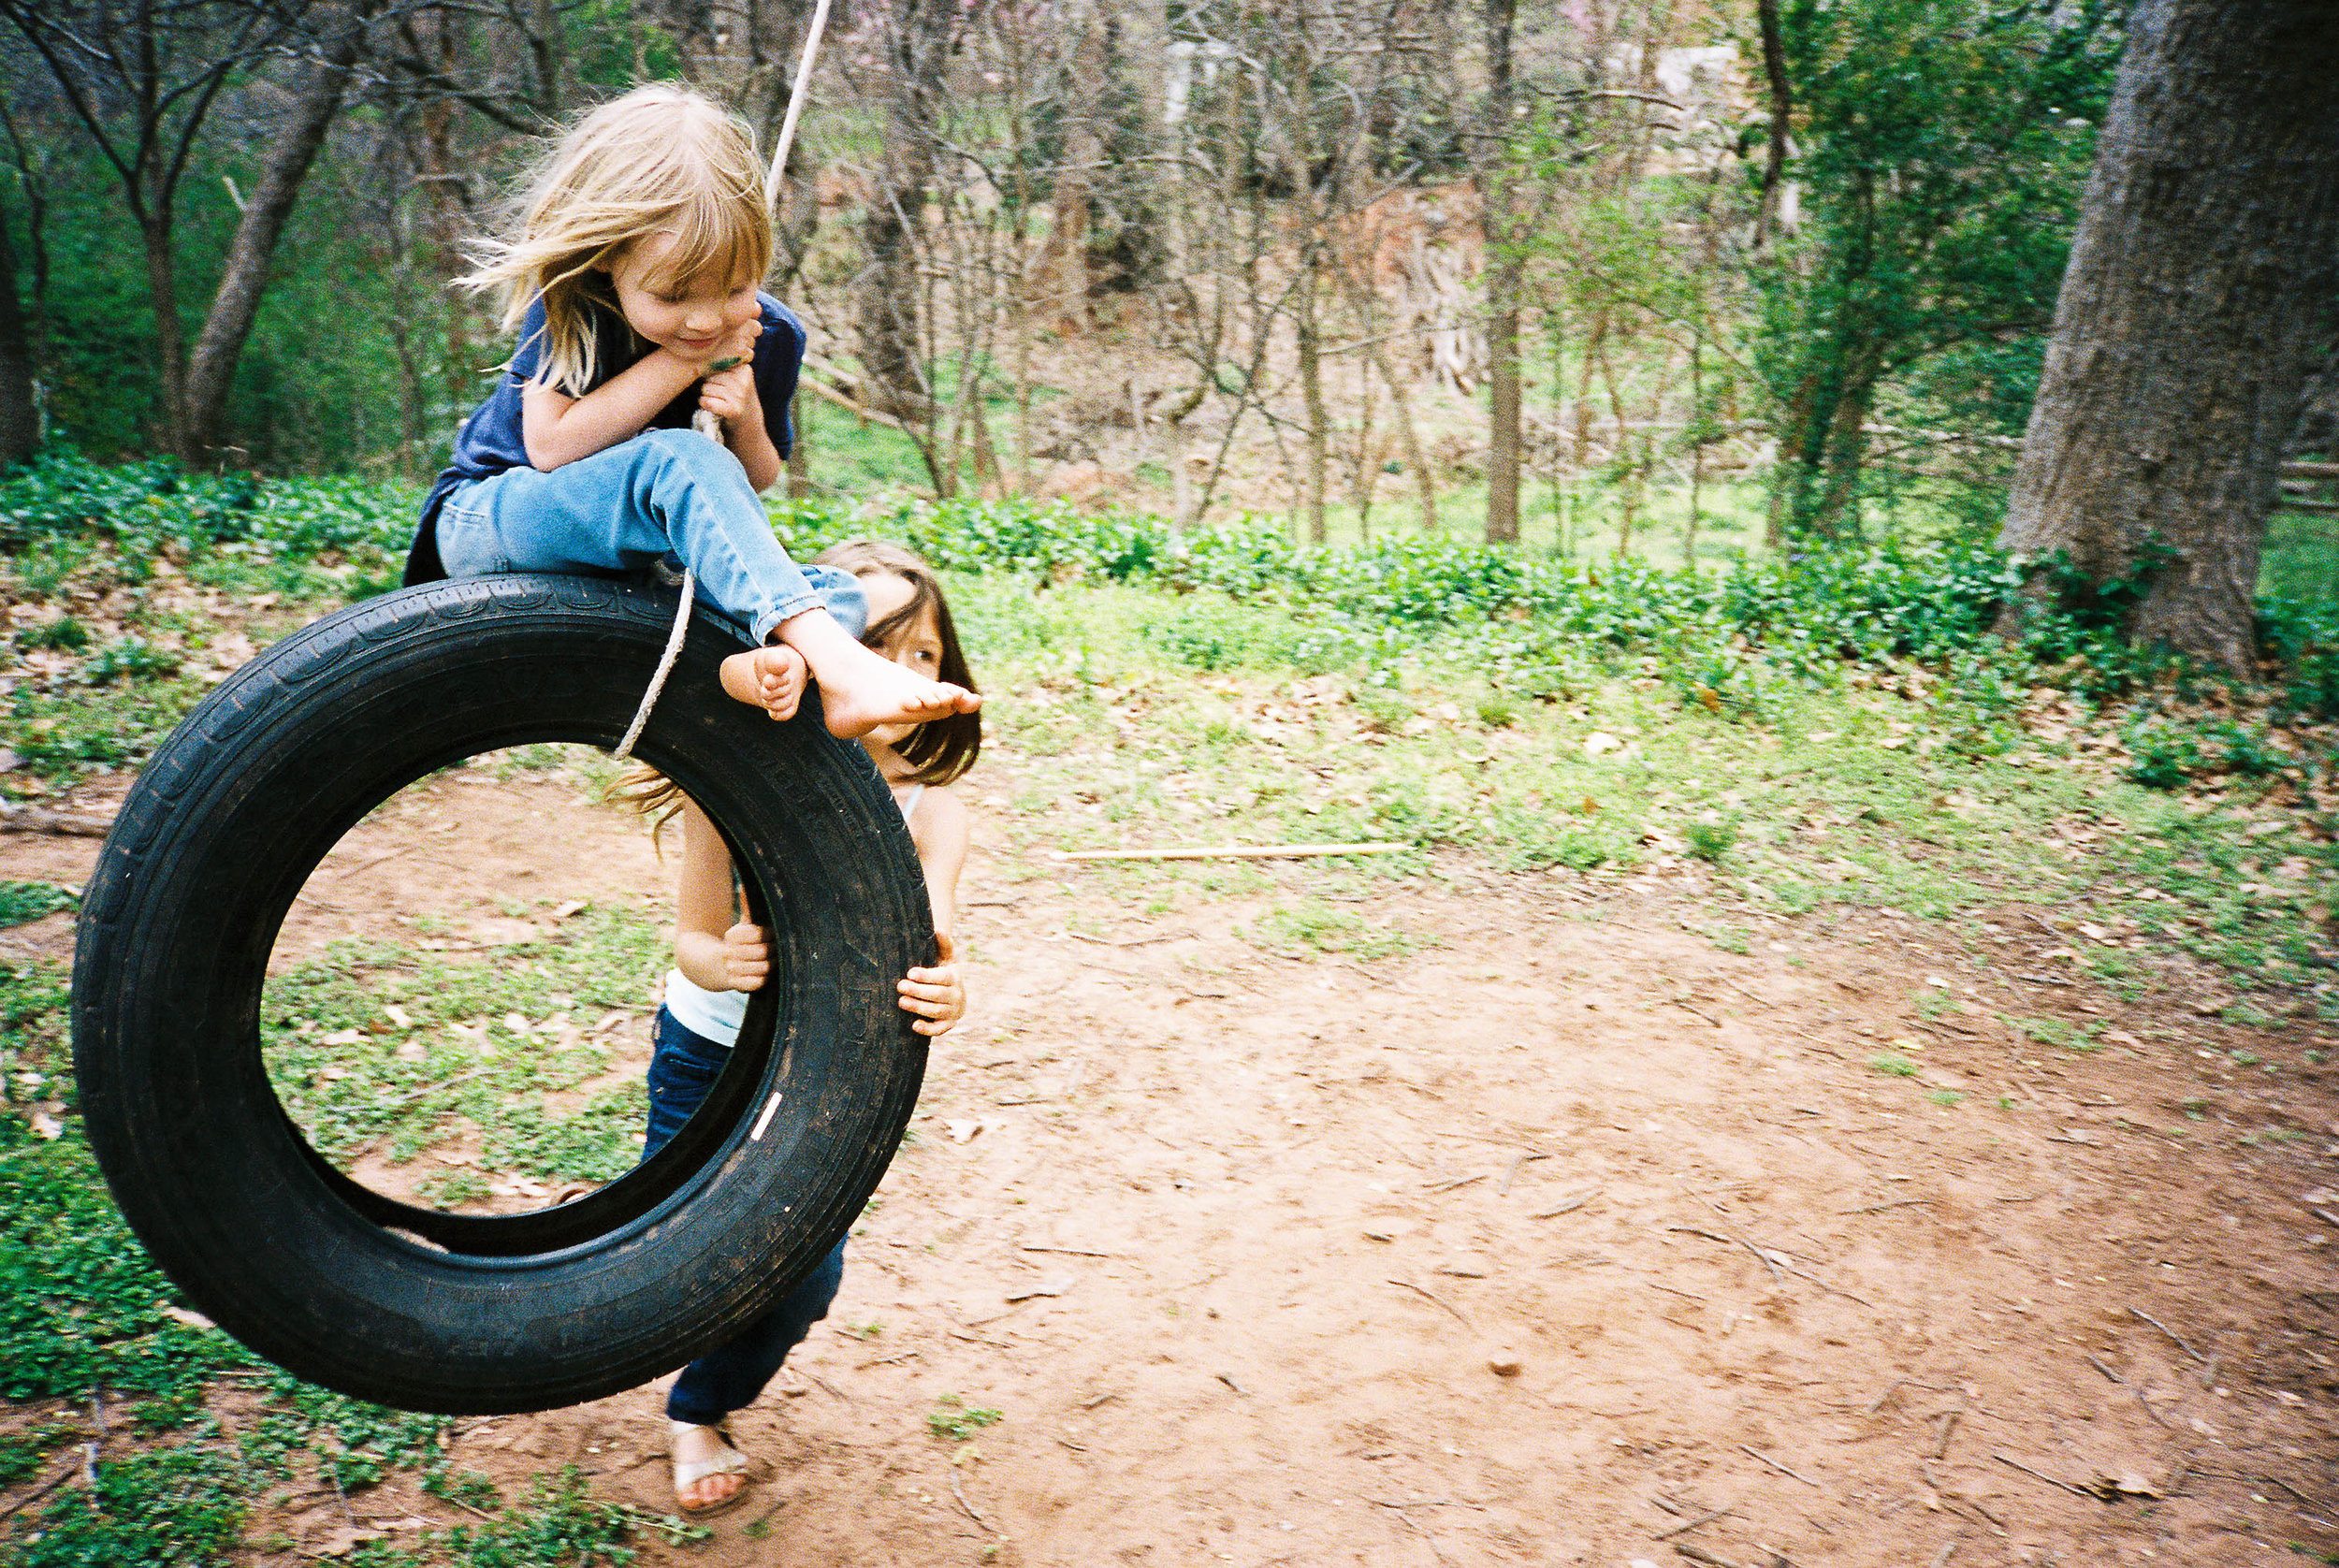 And when Mommy gets tired, sister fills in.  You can see how well loved this tire swing is by the immense patch of dirt beneath it.